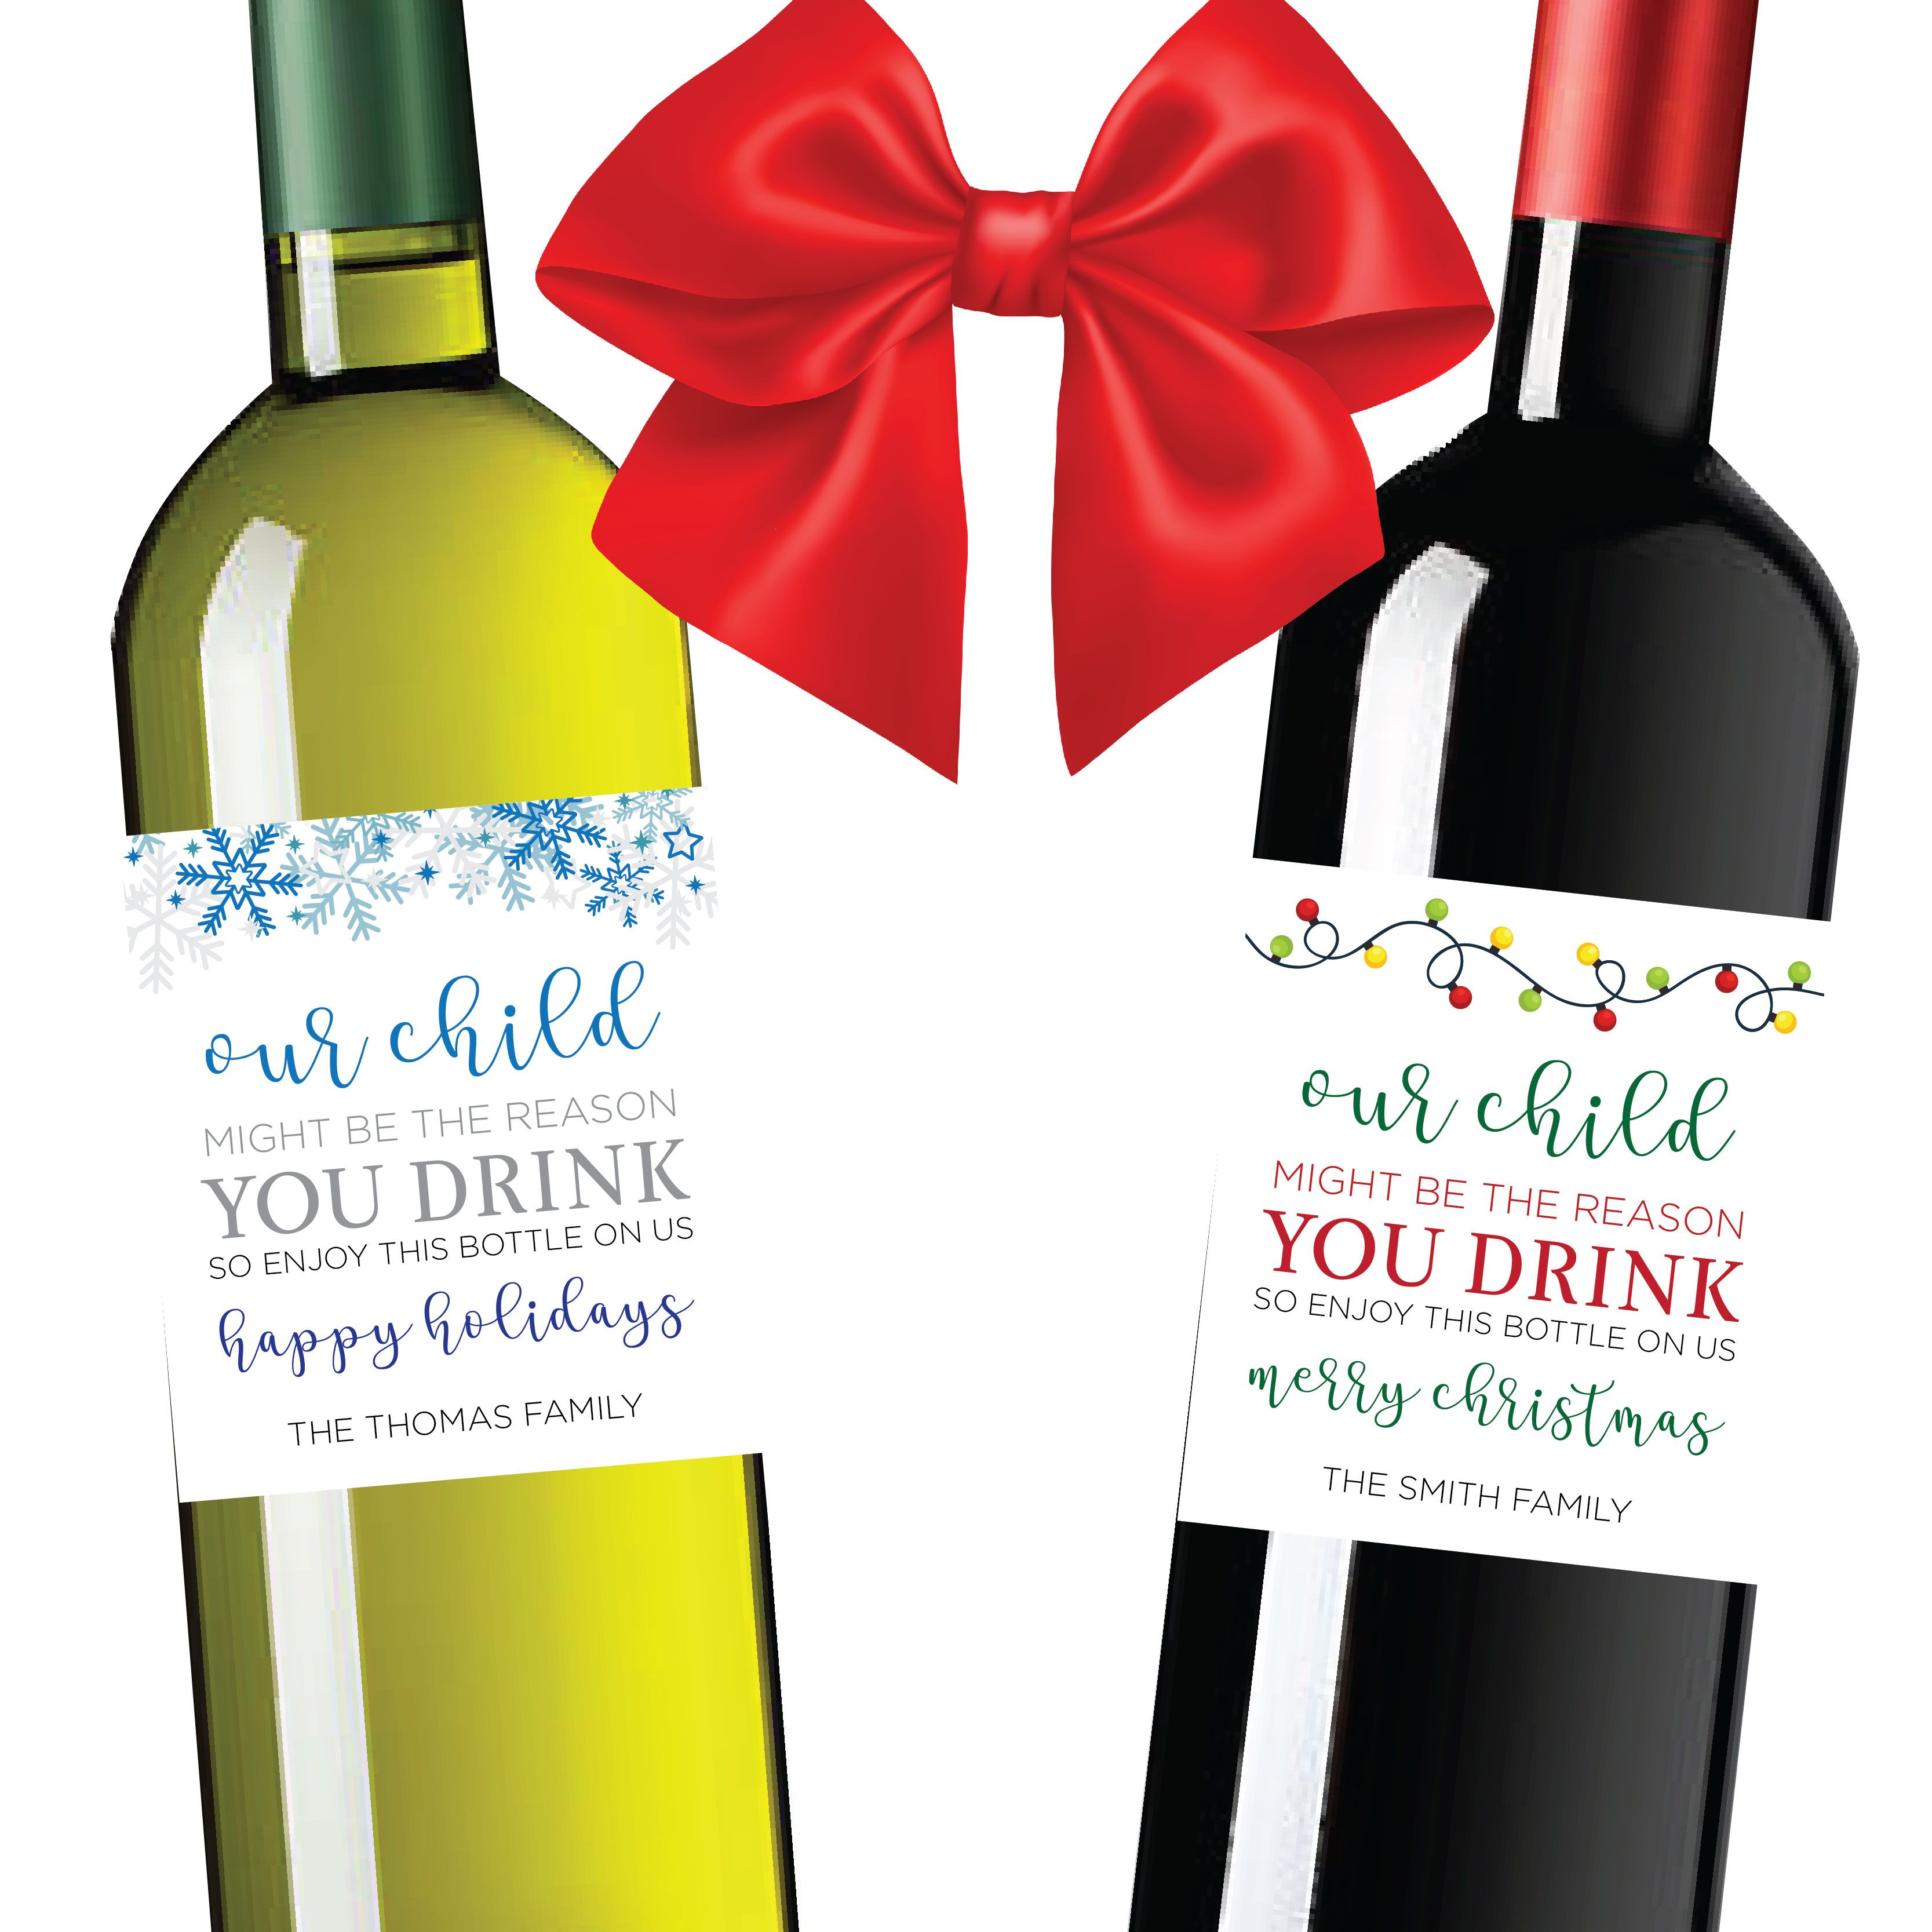 Christmas Wine Bottle Label Check It Out At Https Www Etsy Com Shop Labelthem Christmas Wine Bottle Labels Wine Bottle Labels Wine Bottle